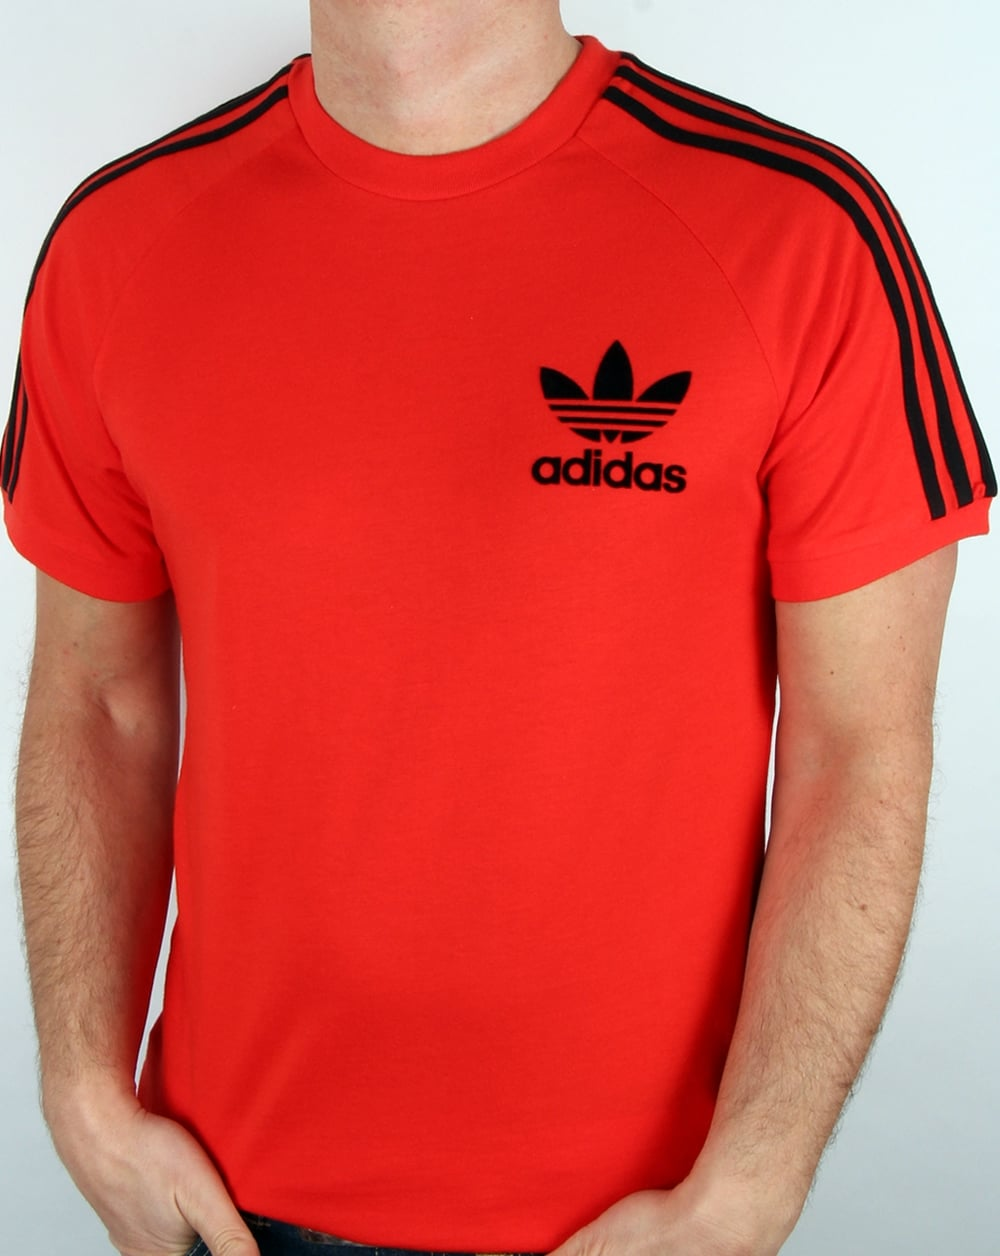 adidas Originals Adidas Originals Retro 3 Stripe T Shirt Core Red 27ea44ab95